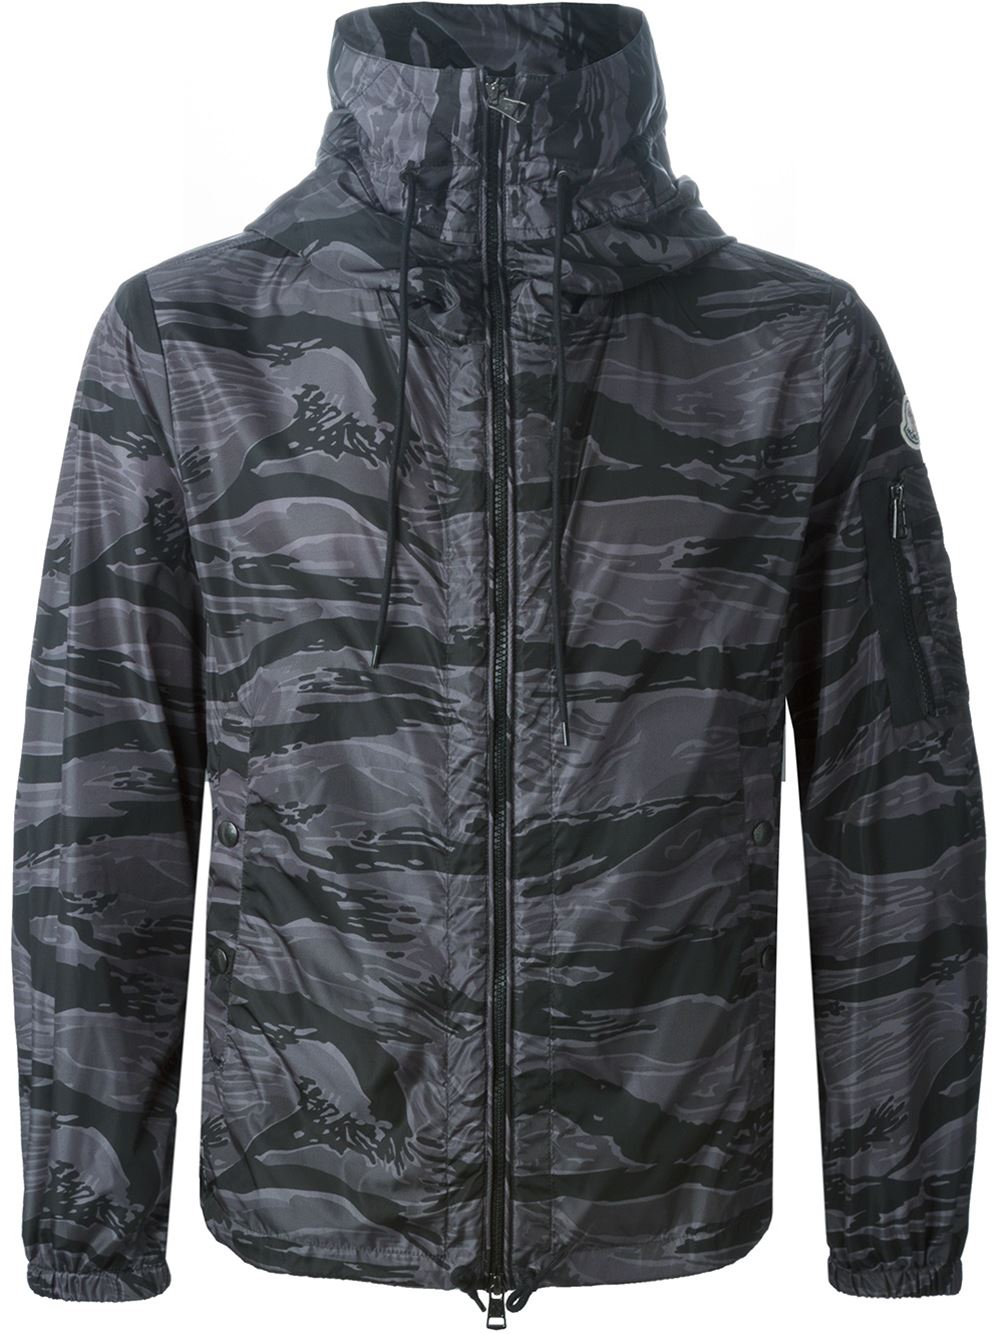 3957a01197d62 Moncler Camouflage Print Windbreaker in Black for Men - Lyst